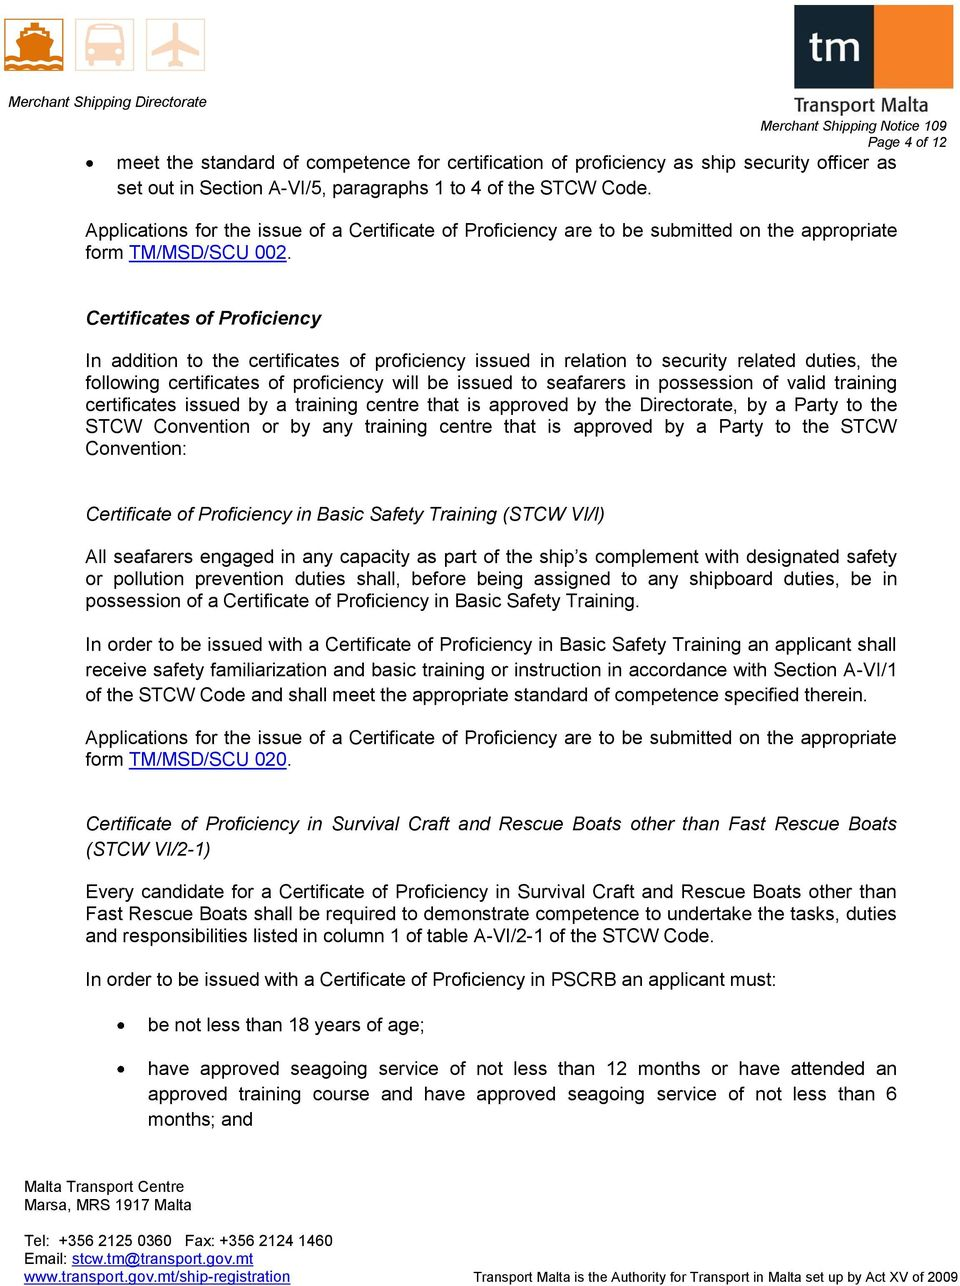 possession of valid training certificates issued by a training centre that is approved by the Directorate, by a Party to the STCW Convention or by any training centre that is approved by a Party to